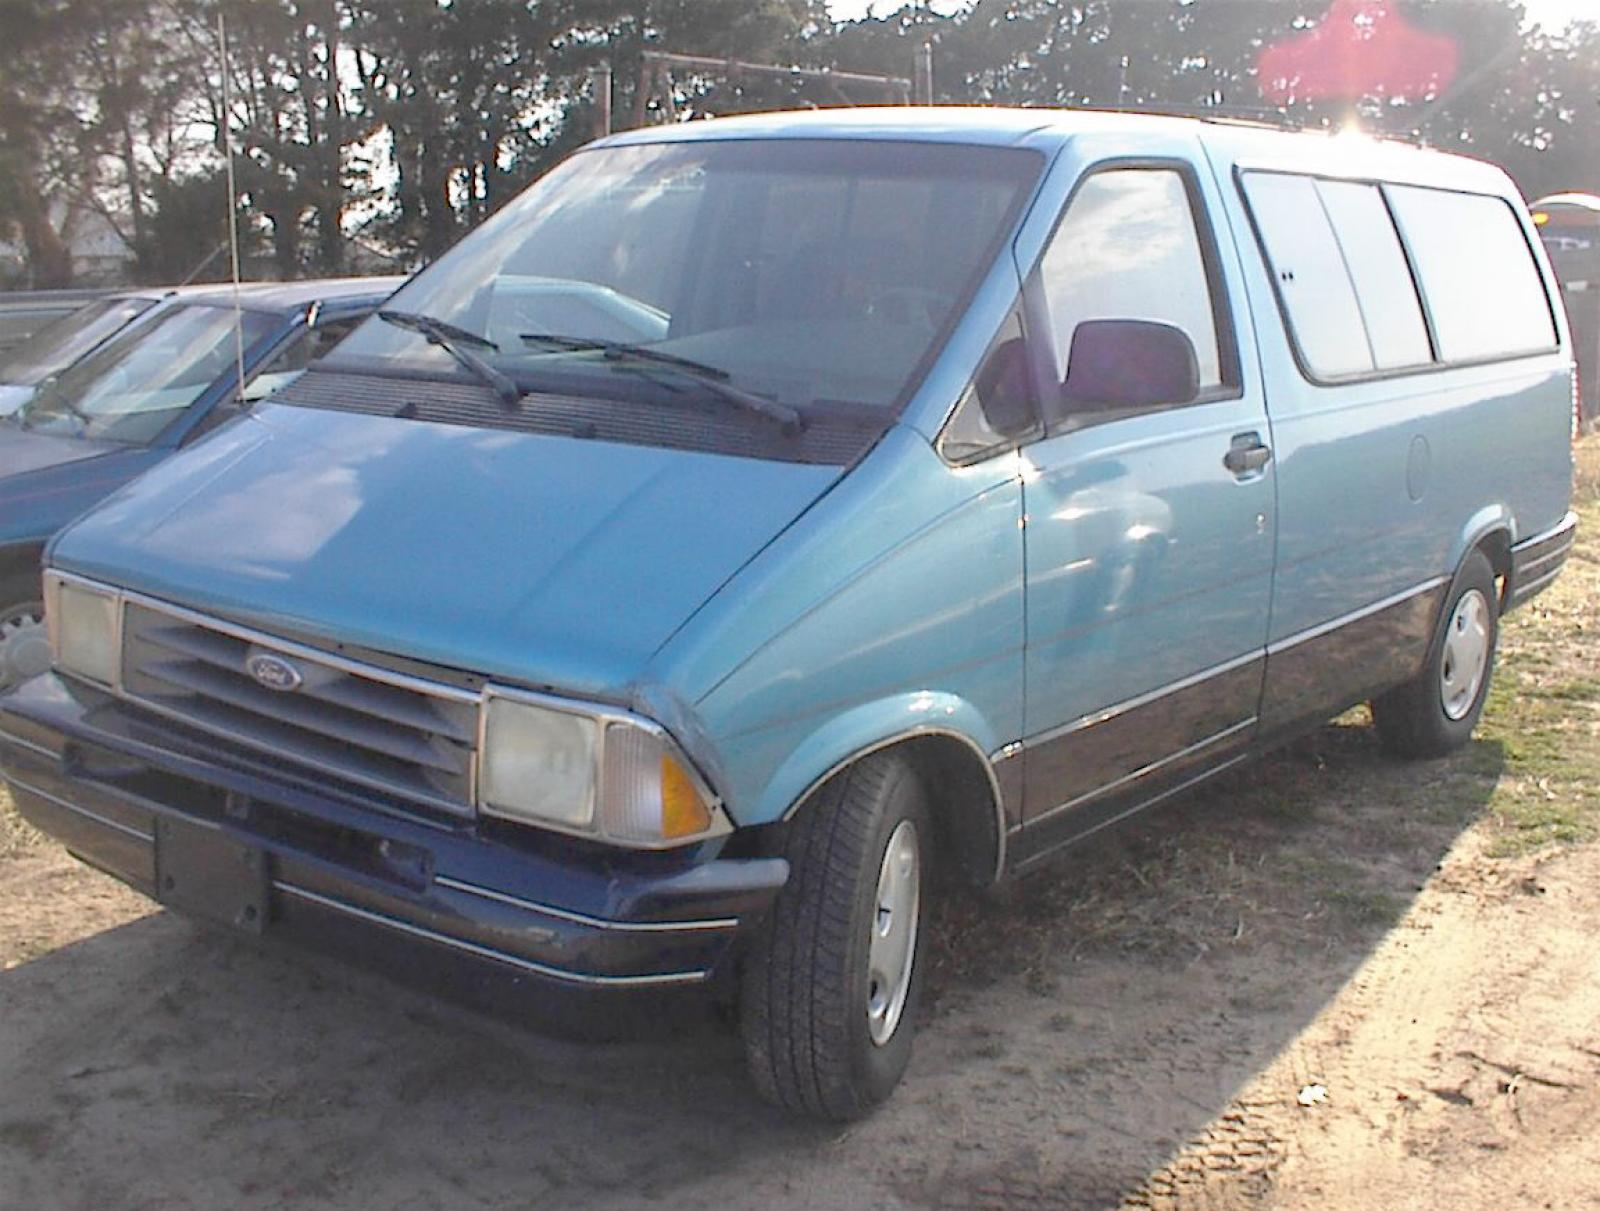 Ford aerostar service manual manual cd engine automotive 800 1024 1280 1600 origin 1993 ford aerostar 1993 ford aerostar information and photos zombiedrive fandeluxe Gallery